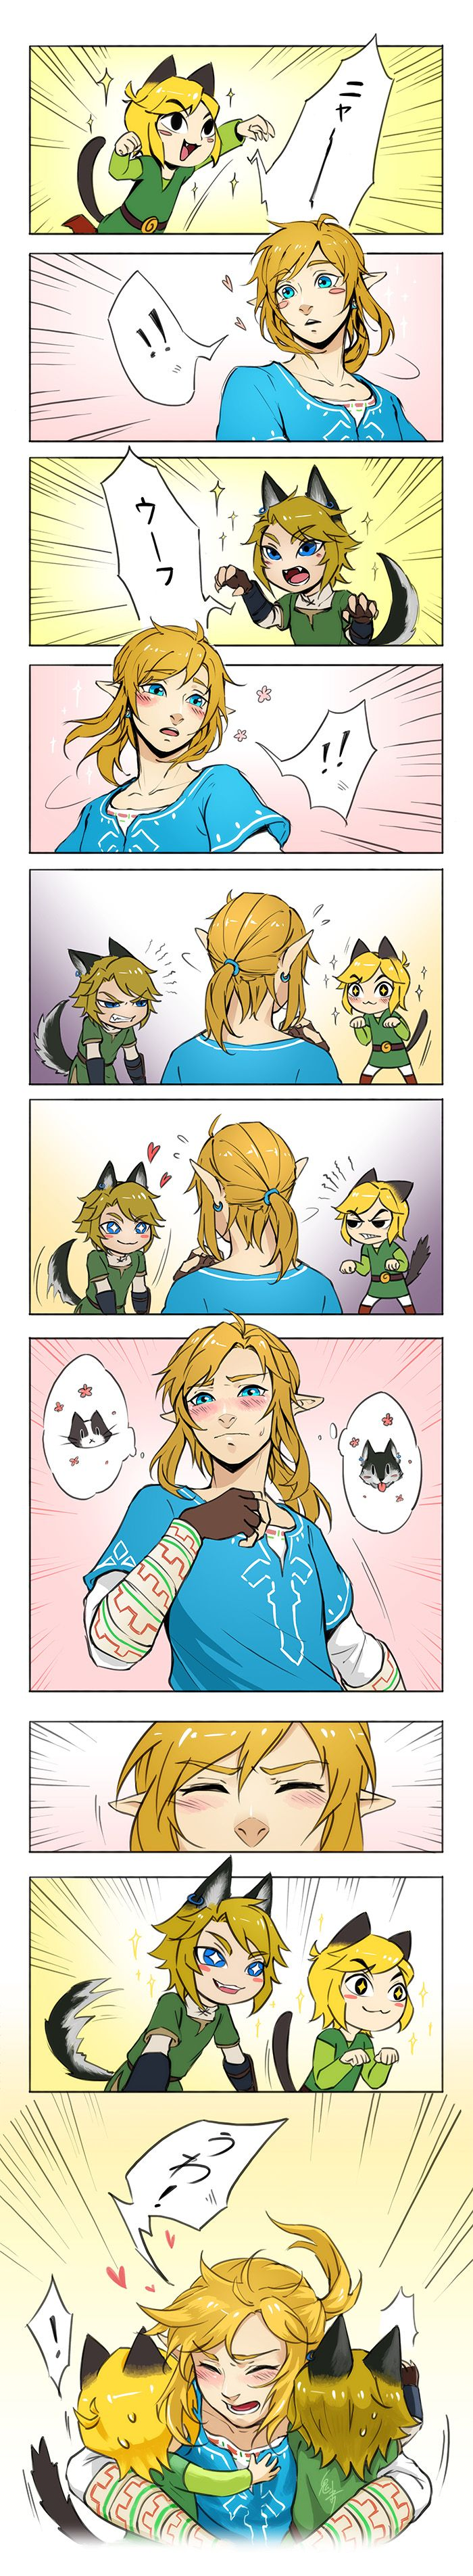 Even liking more wolves than cats... I'd react as him ~u~